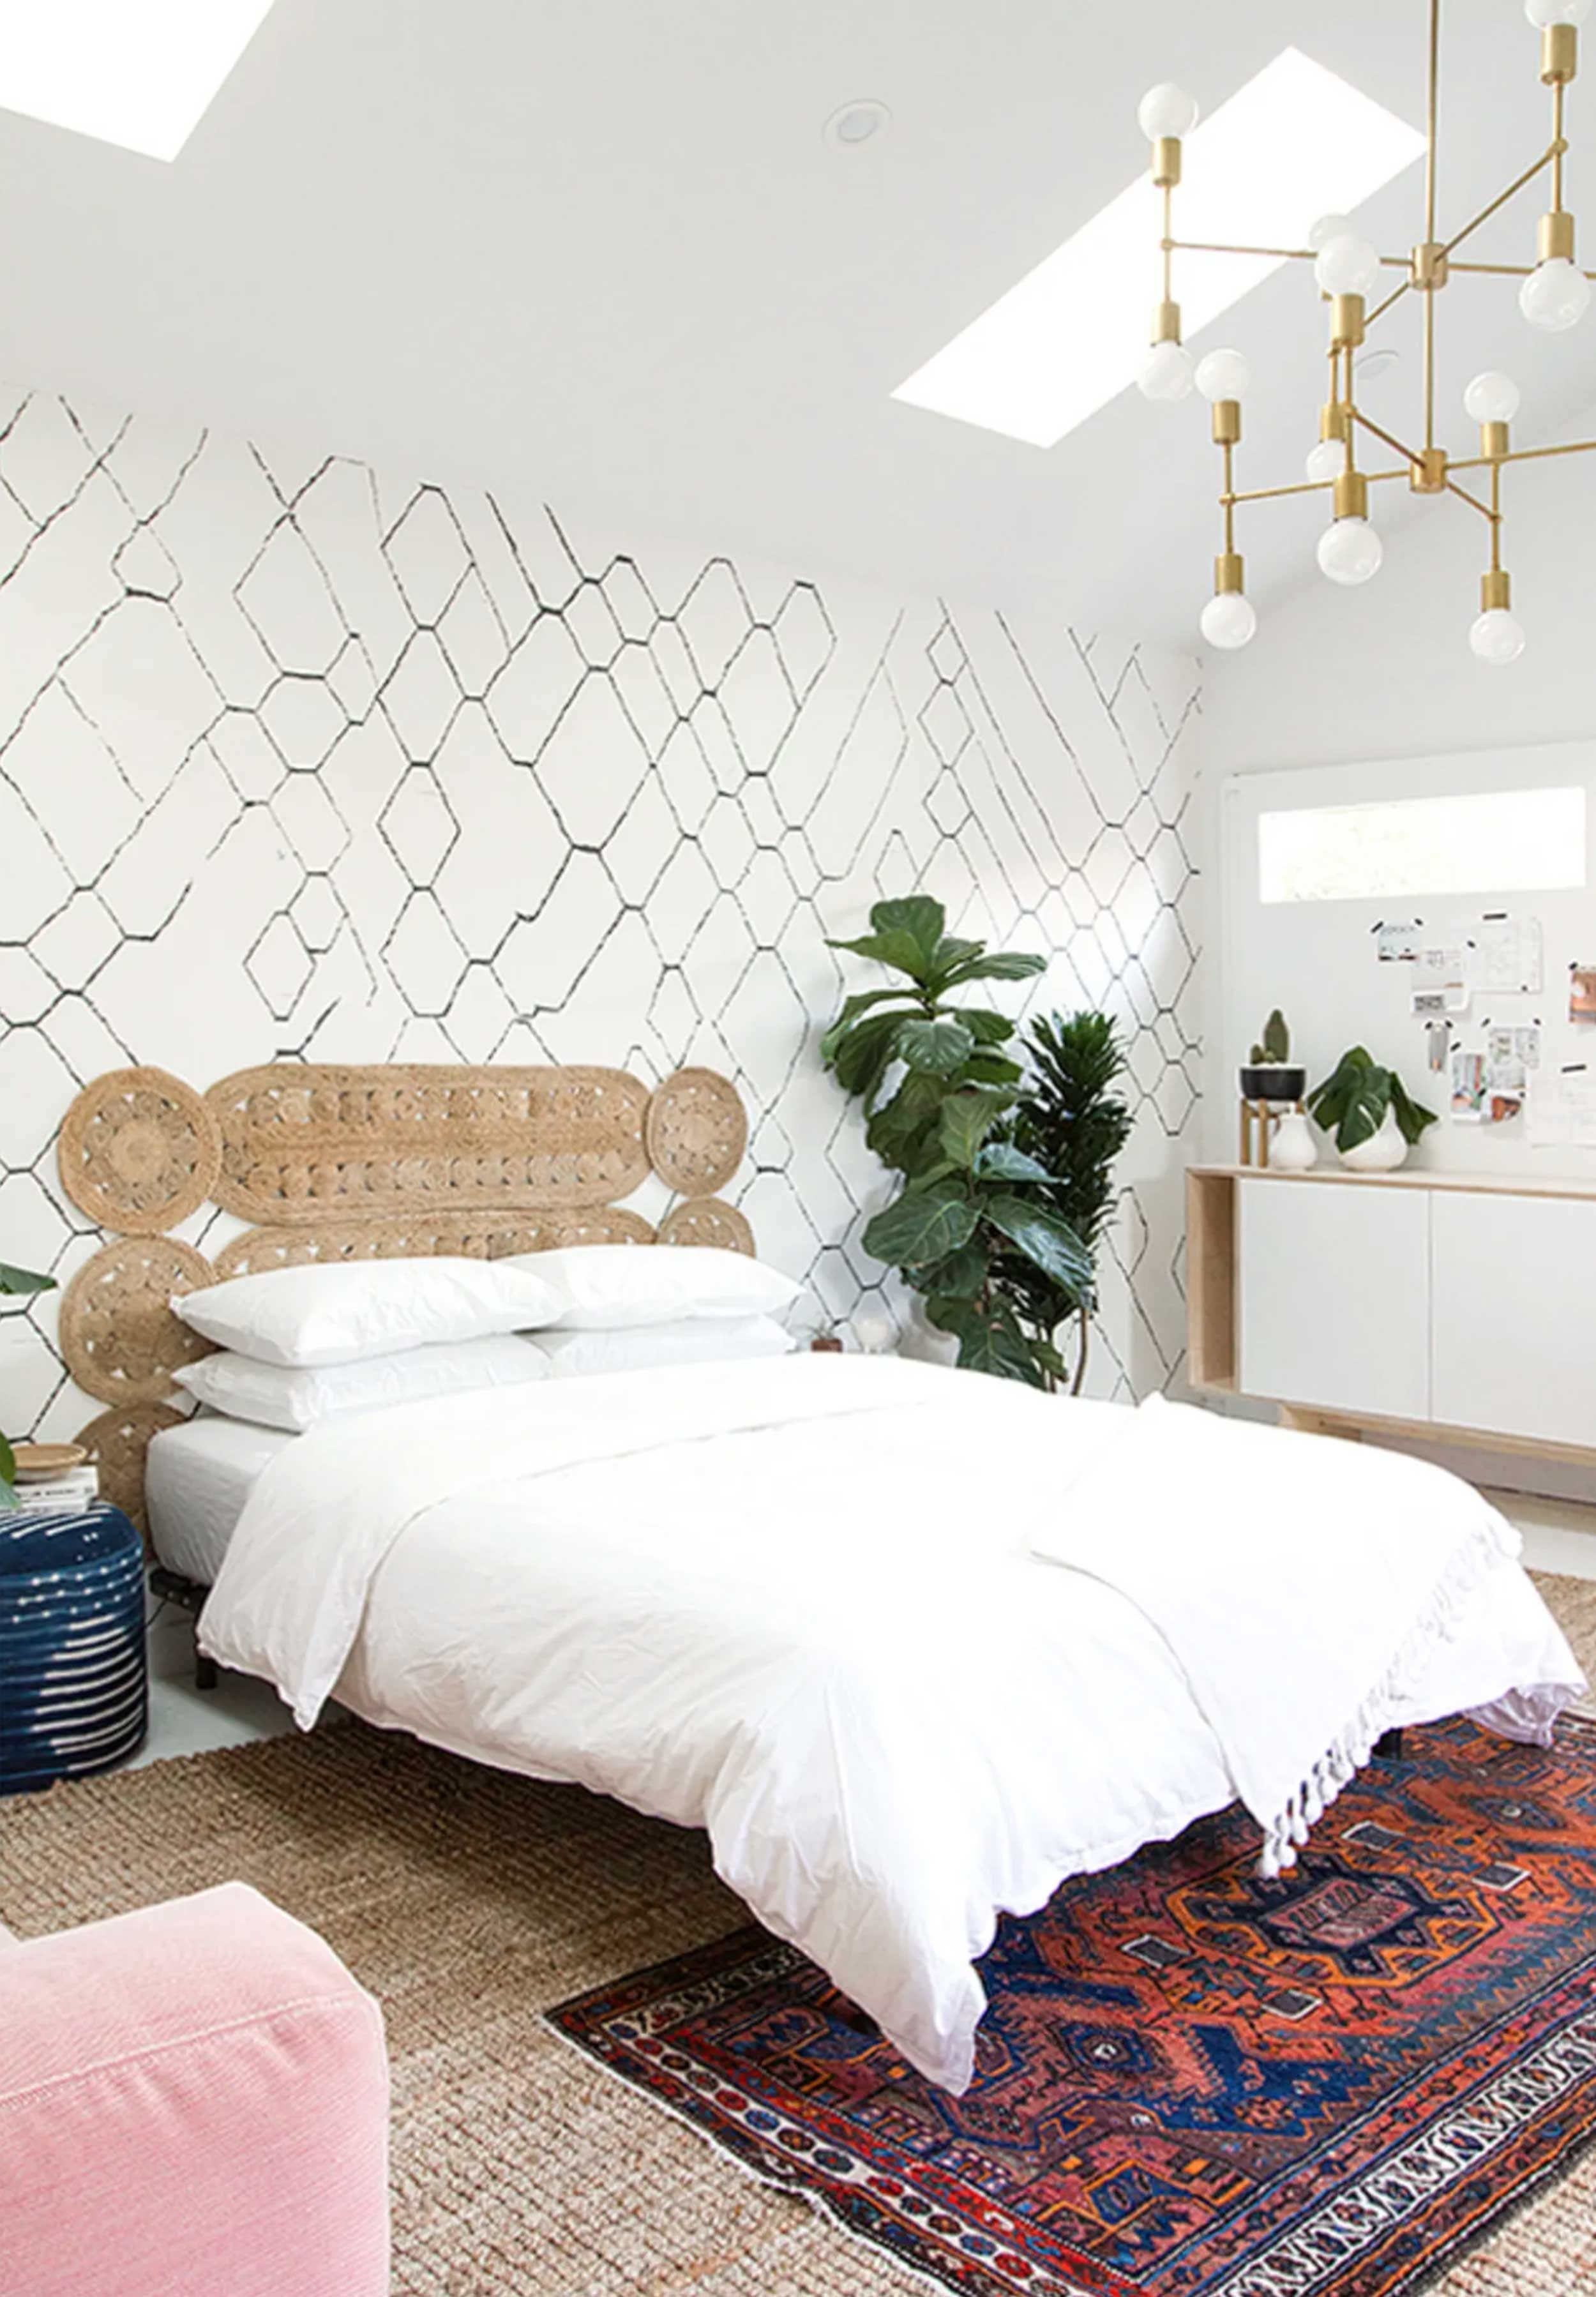 12 DIY Headboards That Everyone Will Think You Actually